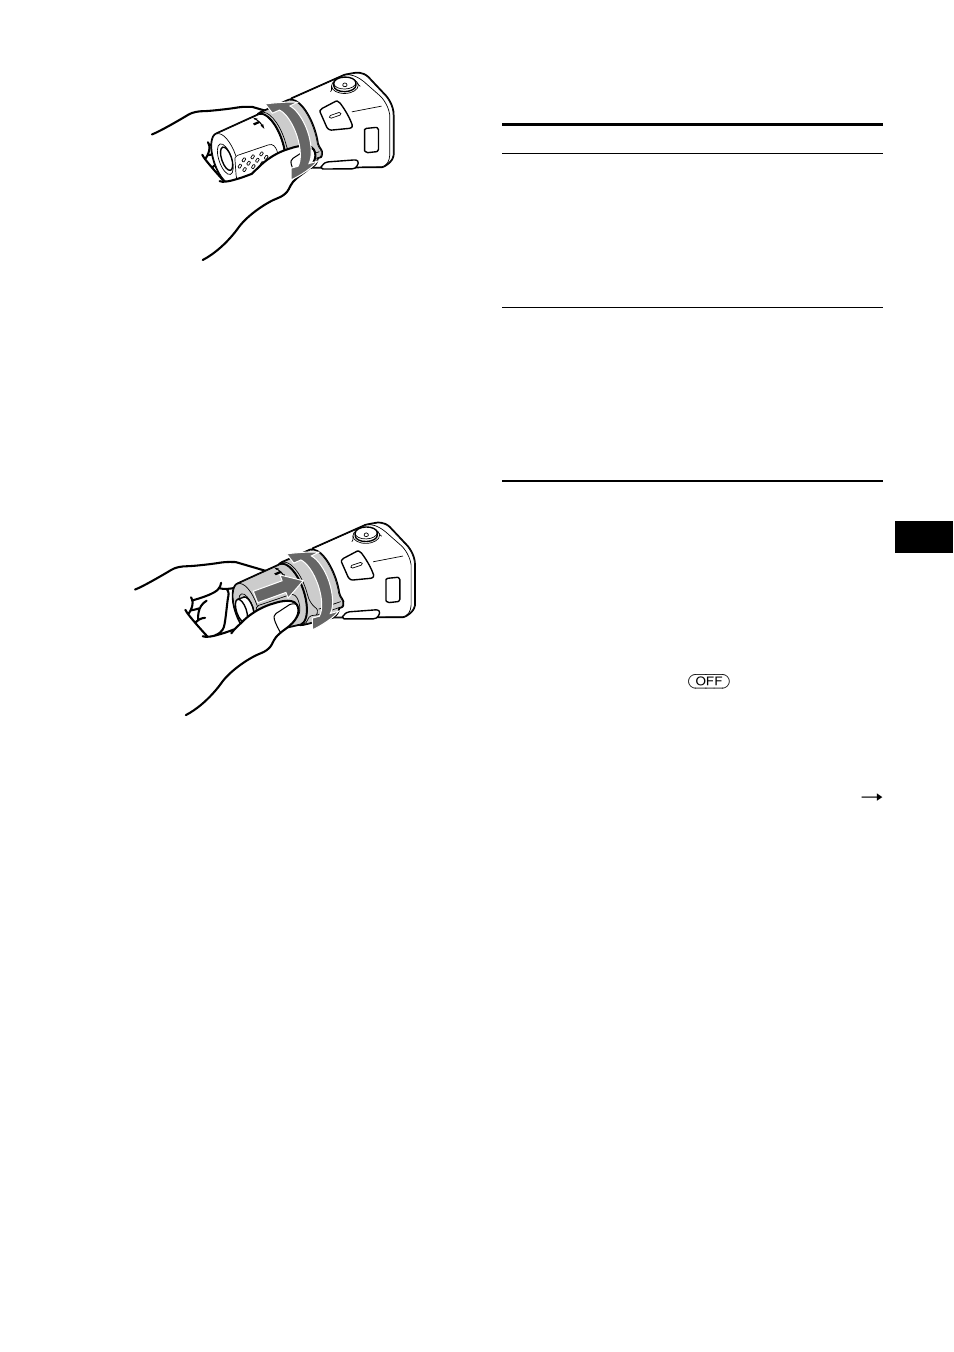 hight resolution of sony cdx fw700 wiring diagram wiring diagram third levelsony cdx fw700 user manual page 19 60